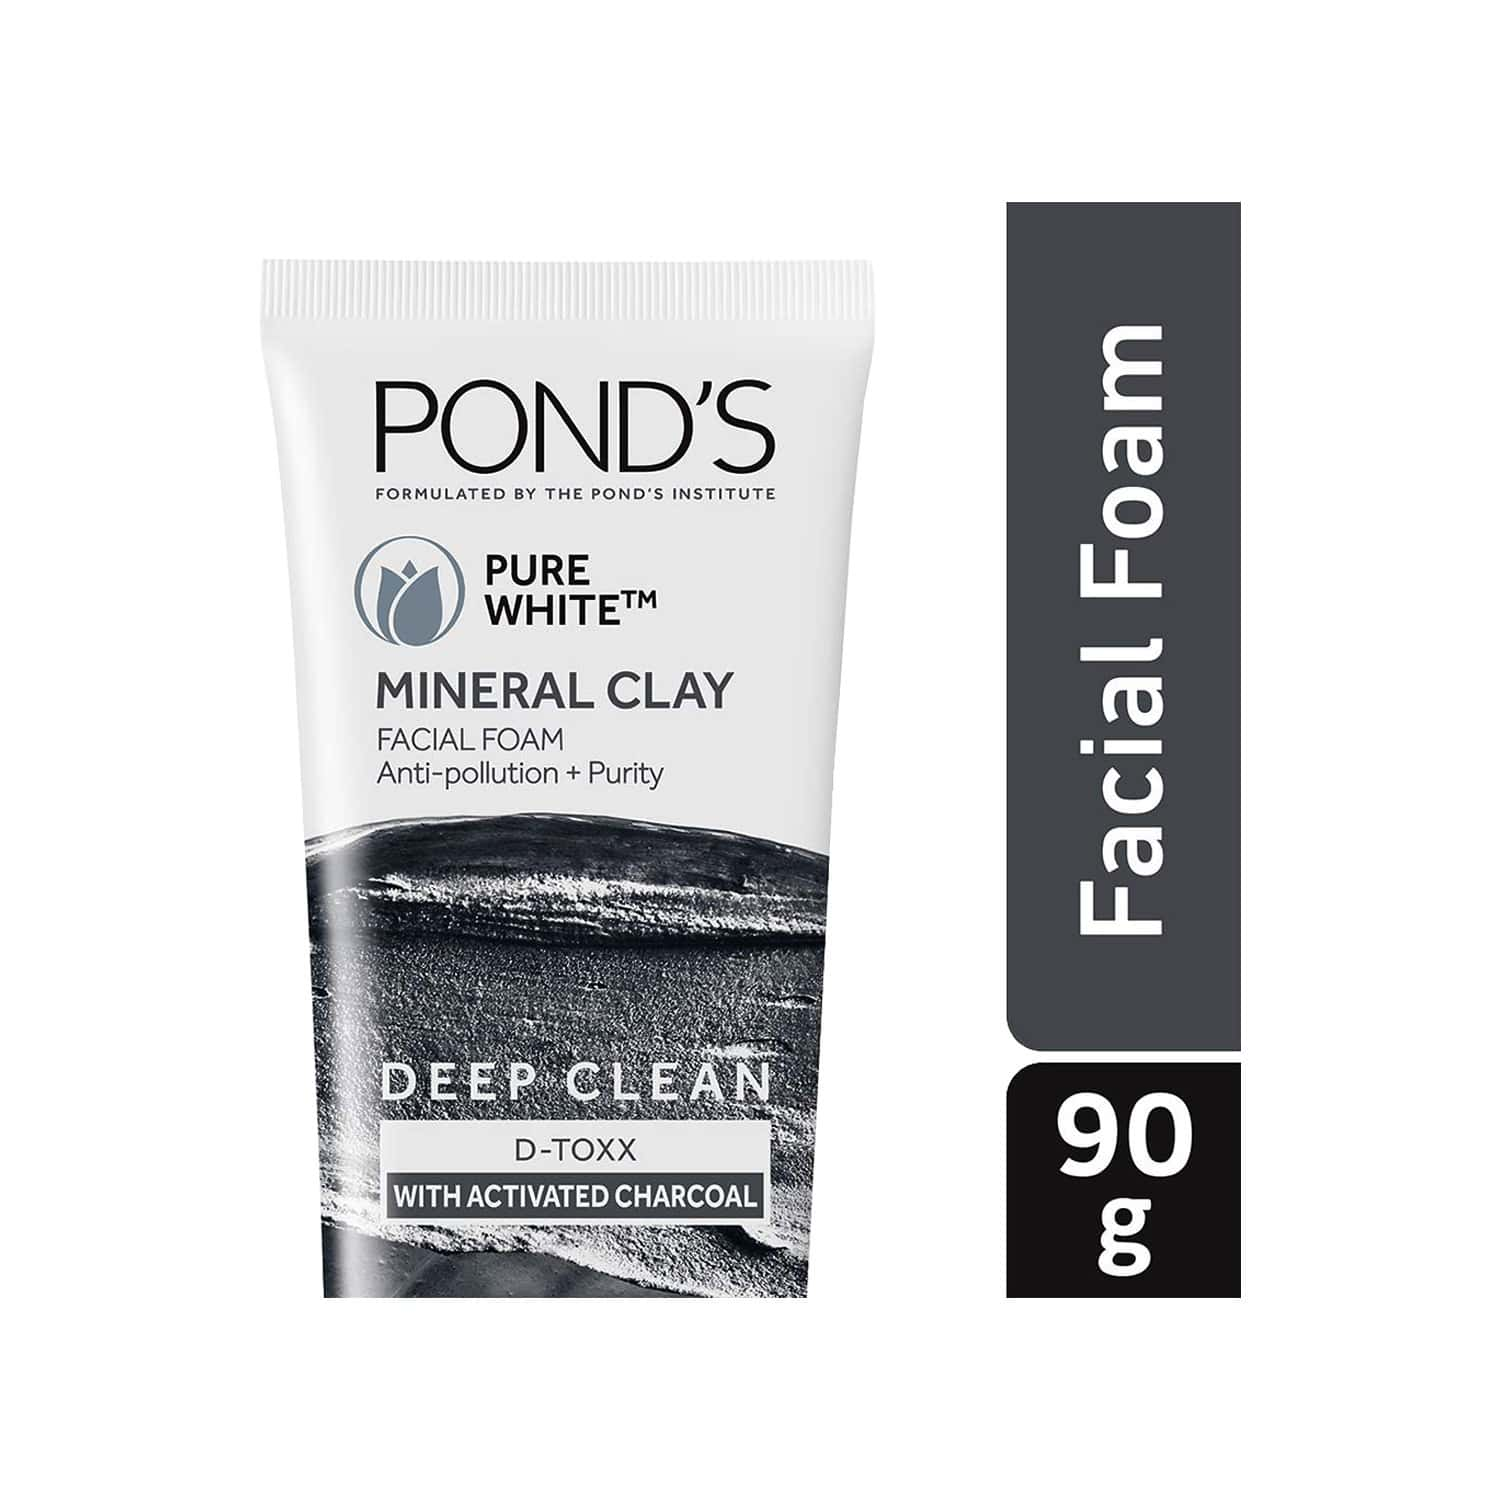 Pond's Pure White Mineral Clay Anti Pollution Purity Face Wash Foam- 90 G